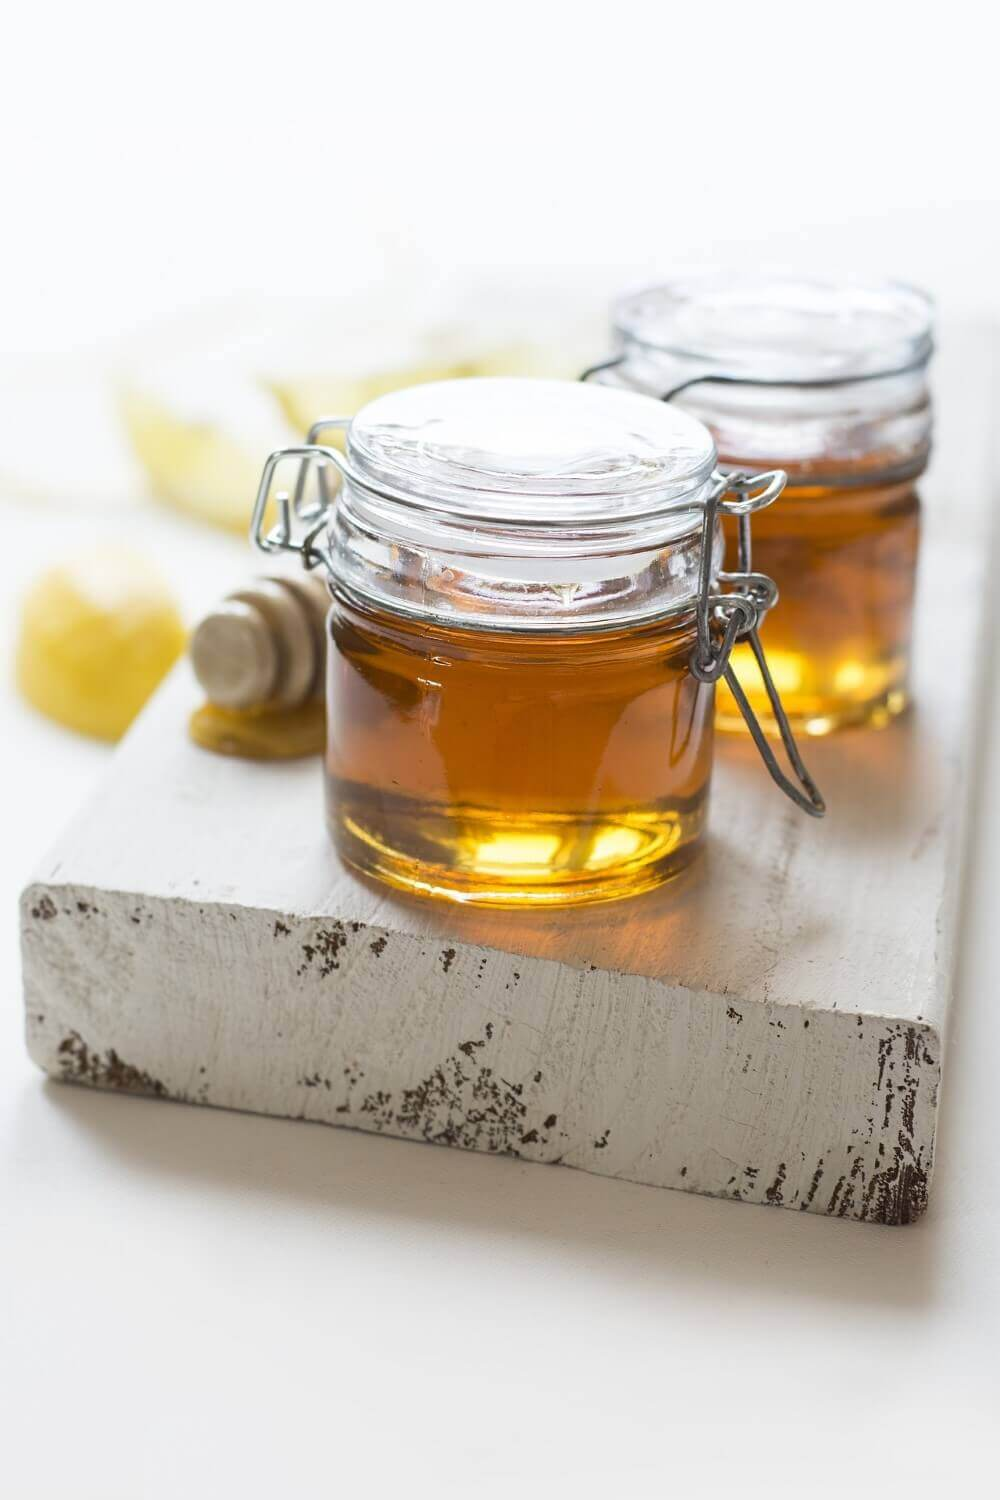 two glass cxans with honey inside